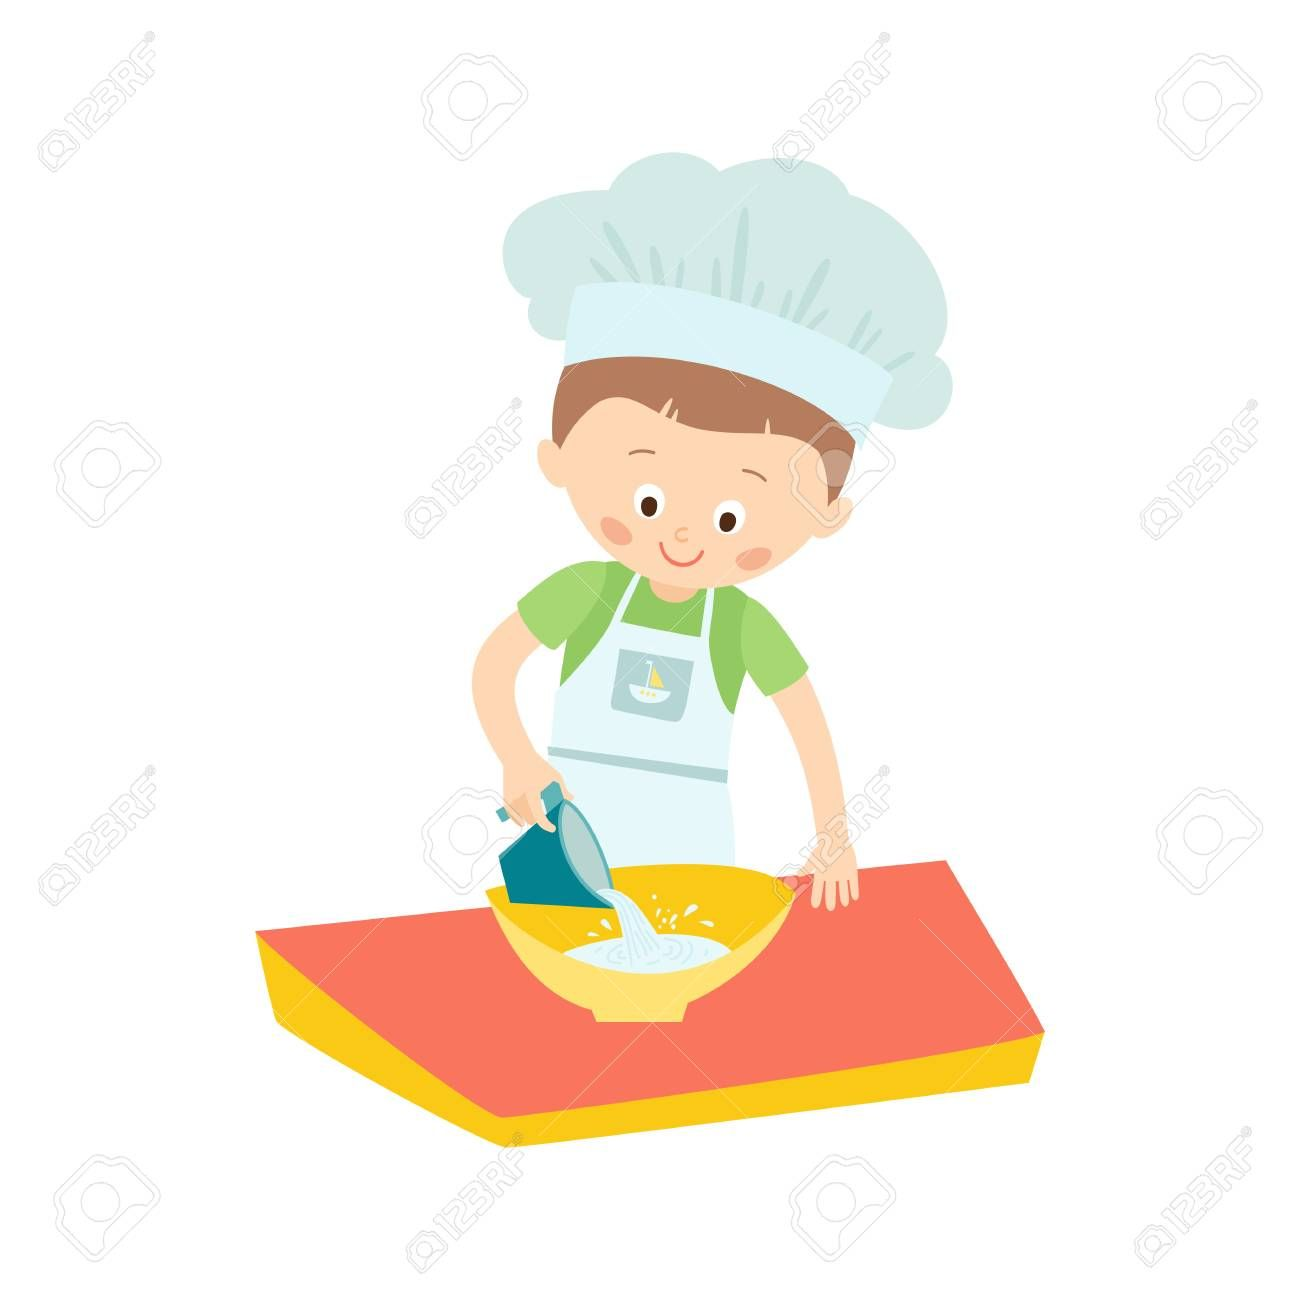 67 Boy Cooking Images Cartoon In